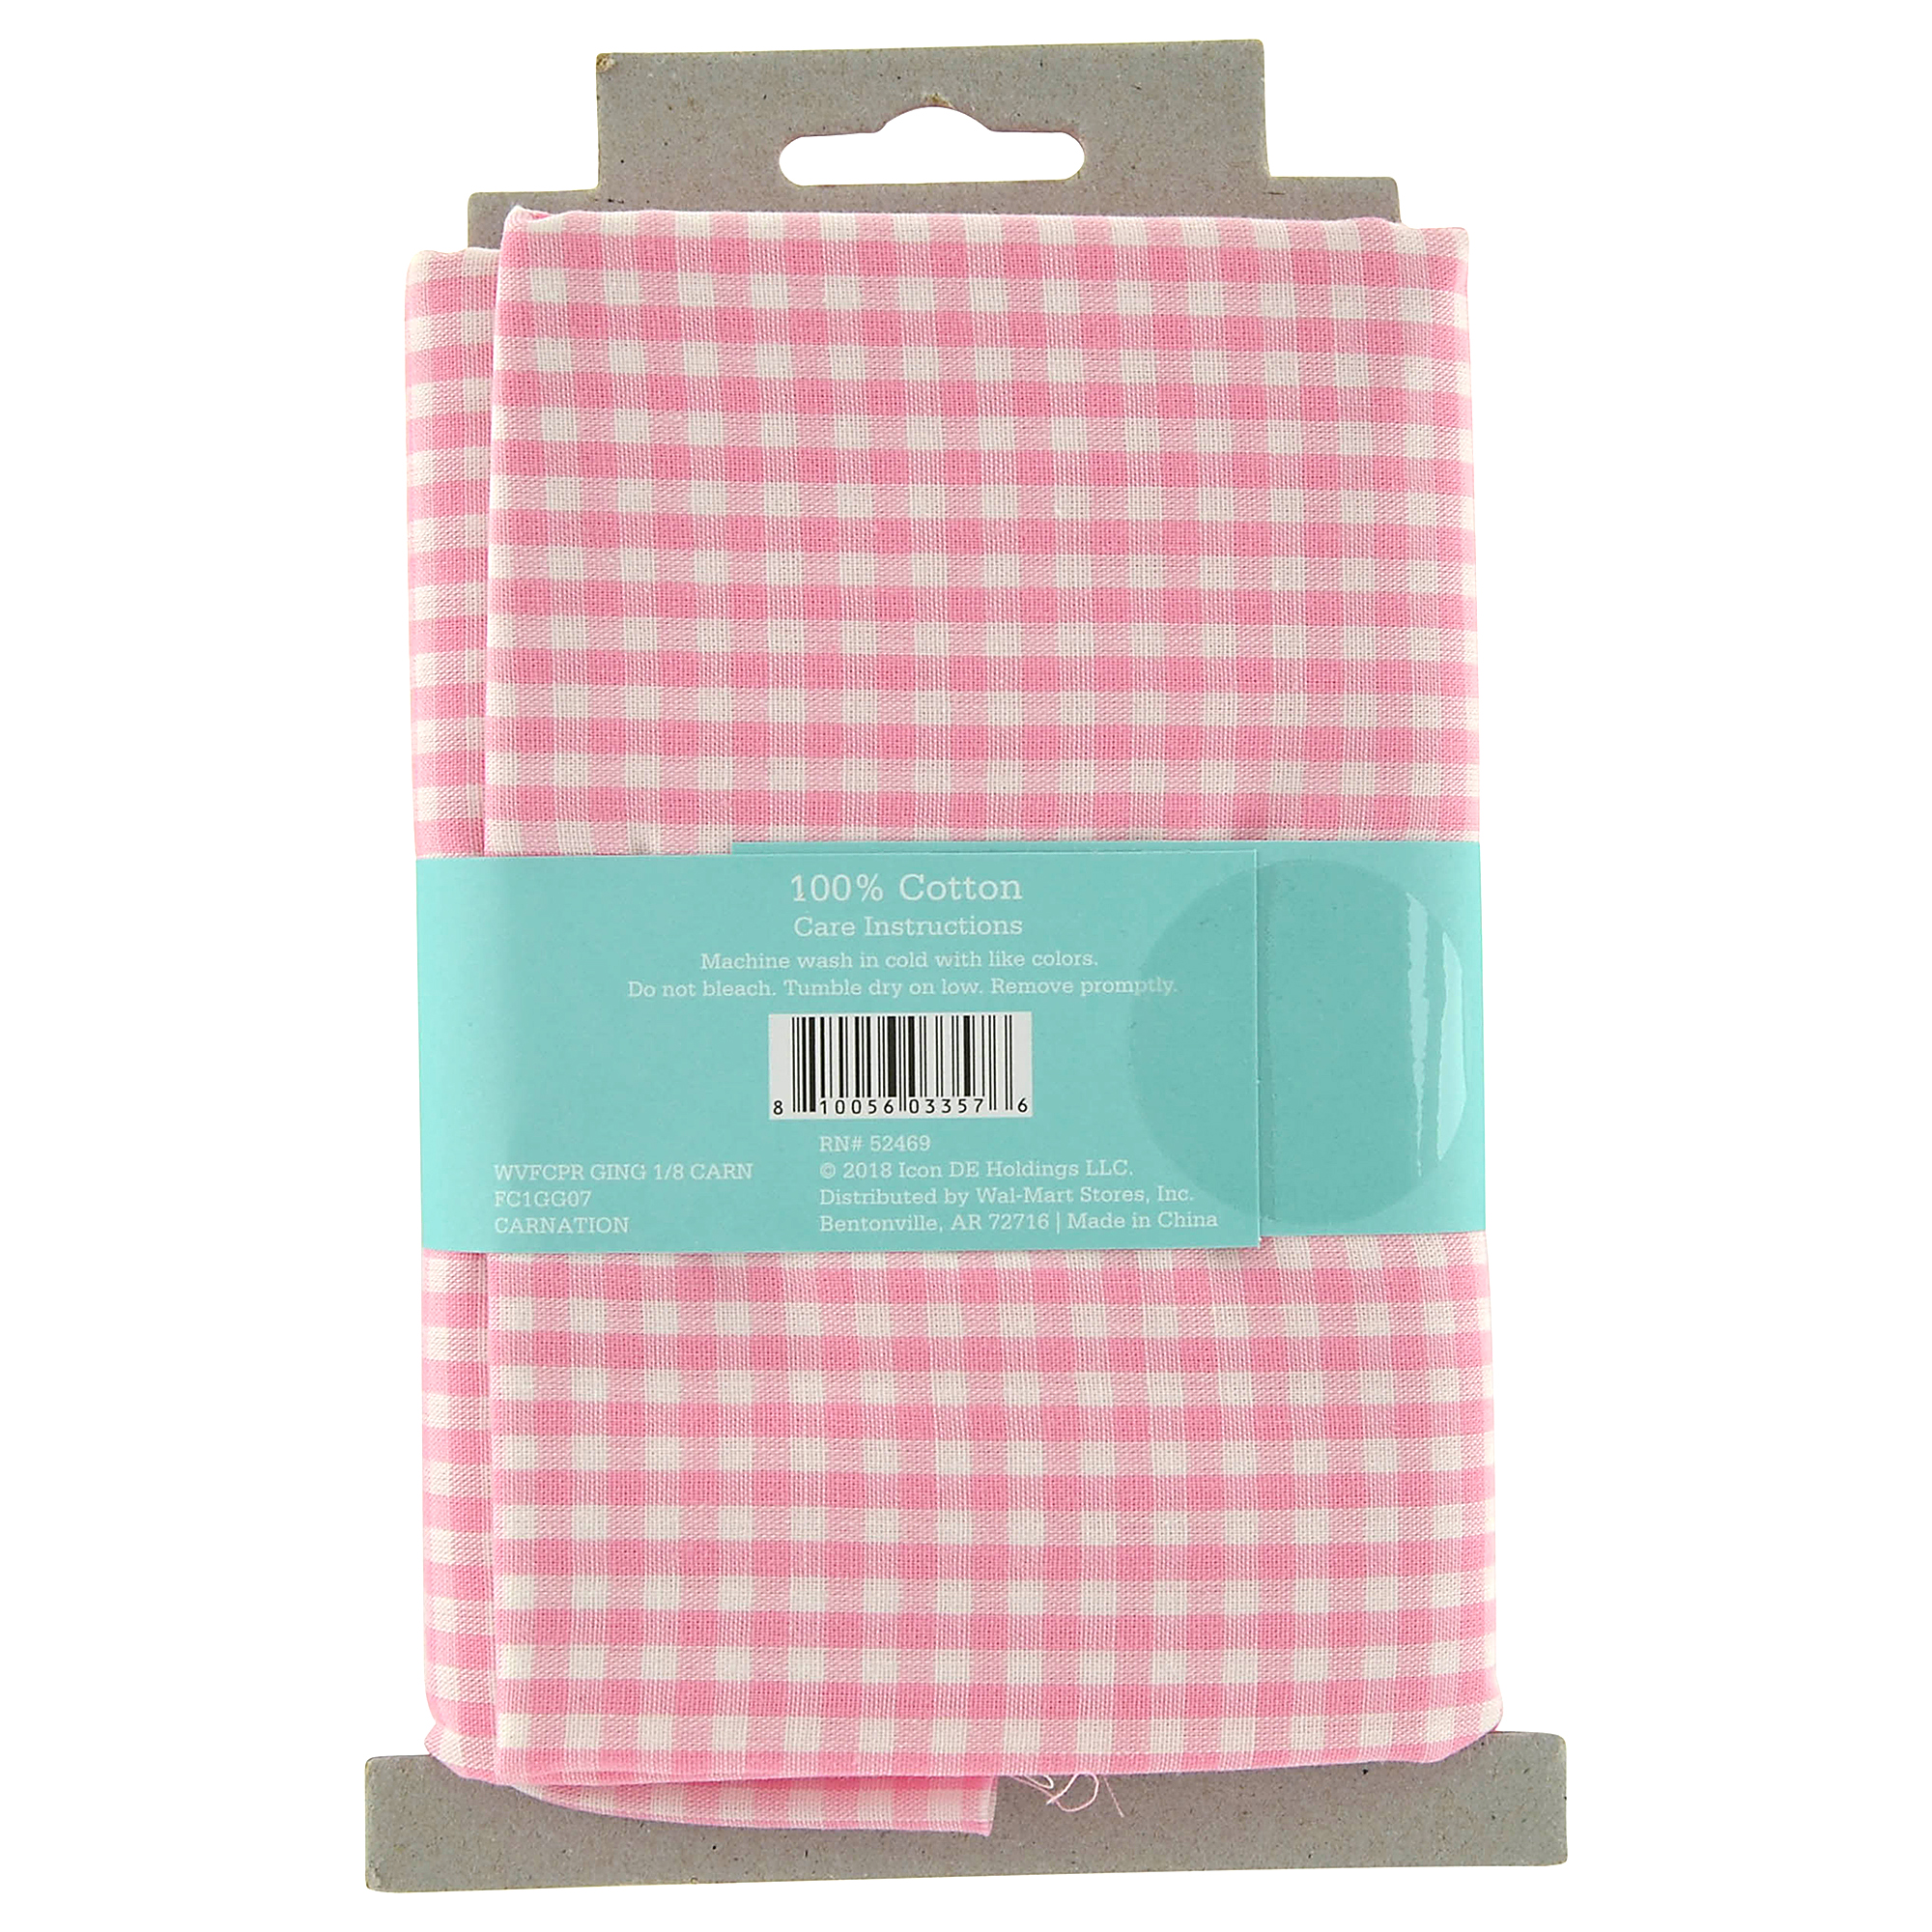 Waverly Inspirations 100% Cotton Fabric, 1 yard, Gingham Carnation